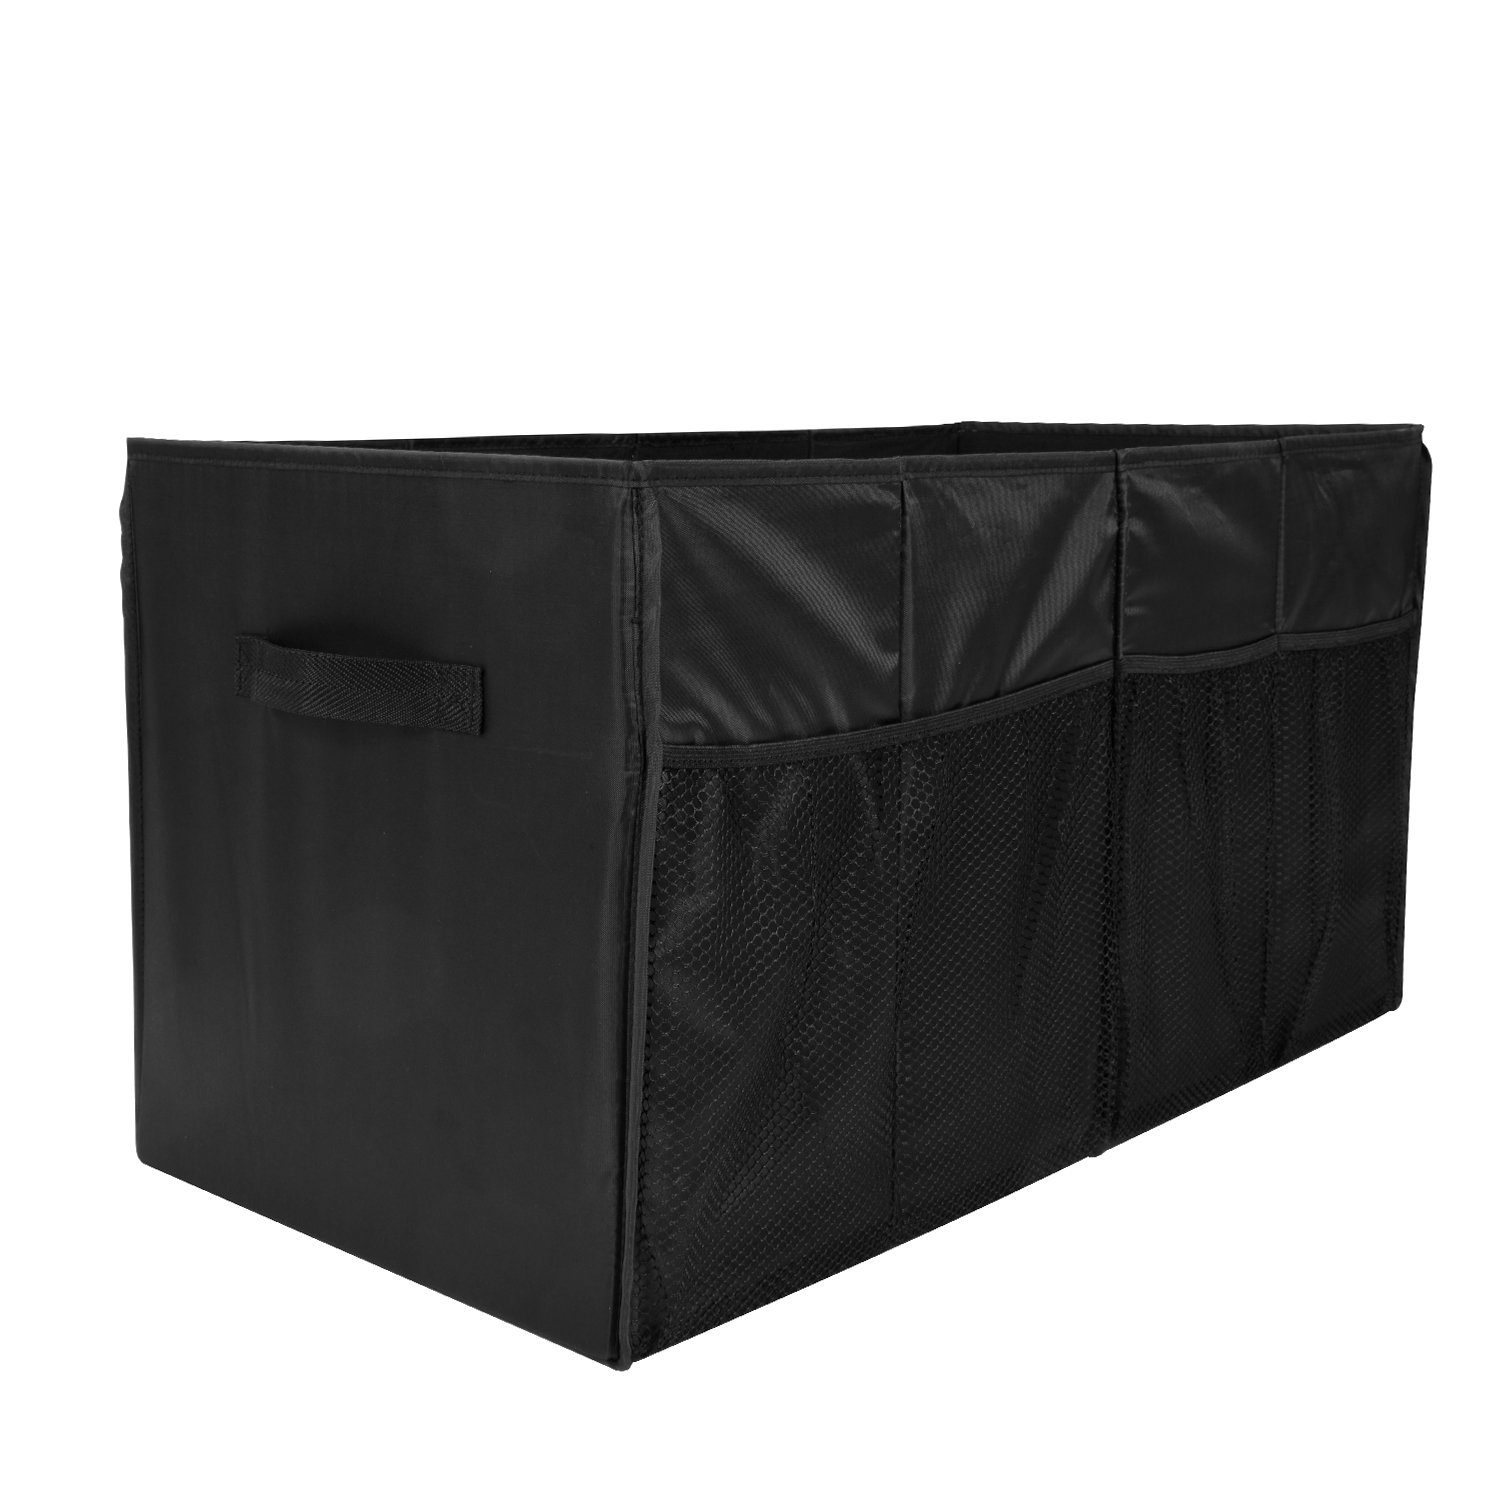 MaidMAX Car Trunk Organizer for SUV with Two Handles and Side Pockets, Foldable, Black, 25.5 Inches Long by MaidMAX (Image #8)